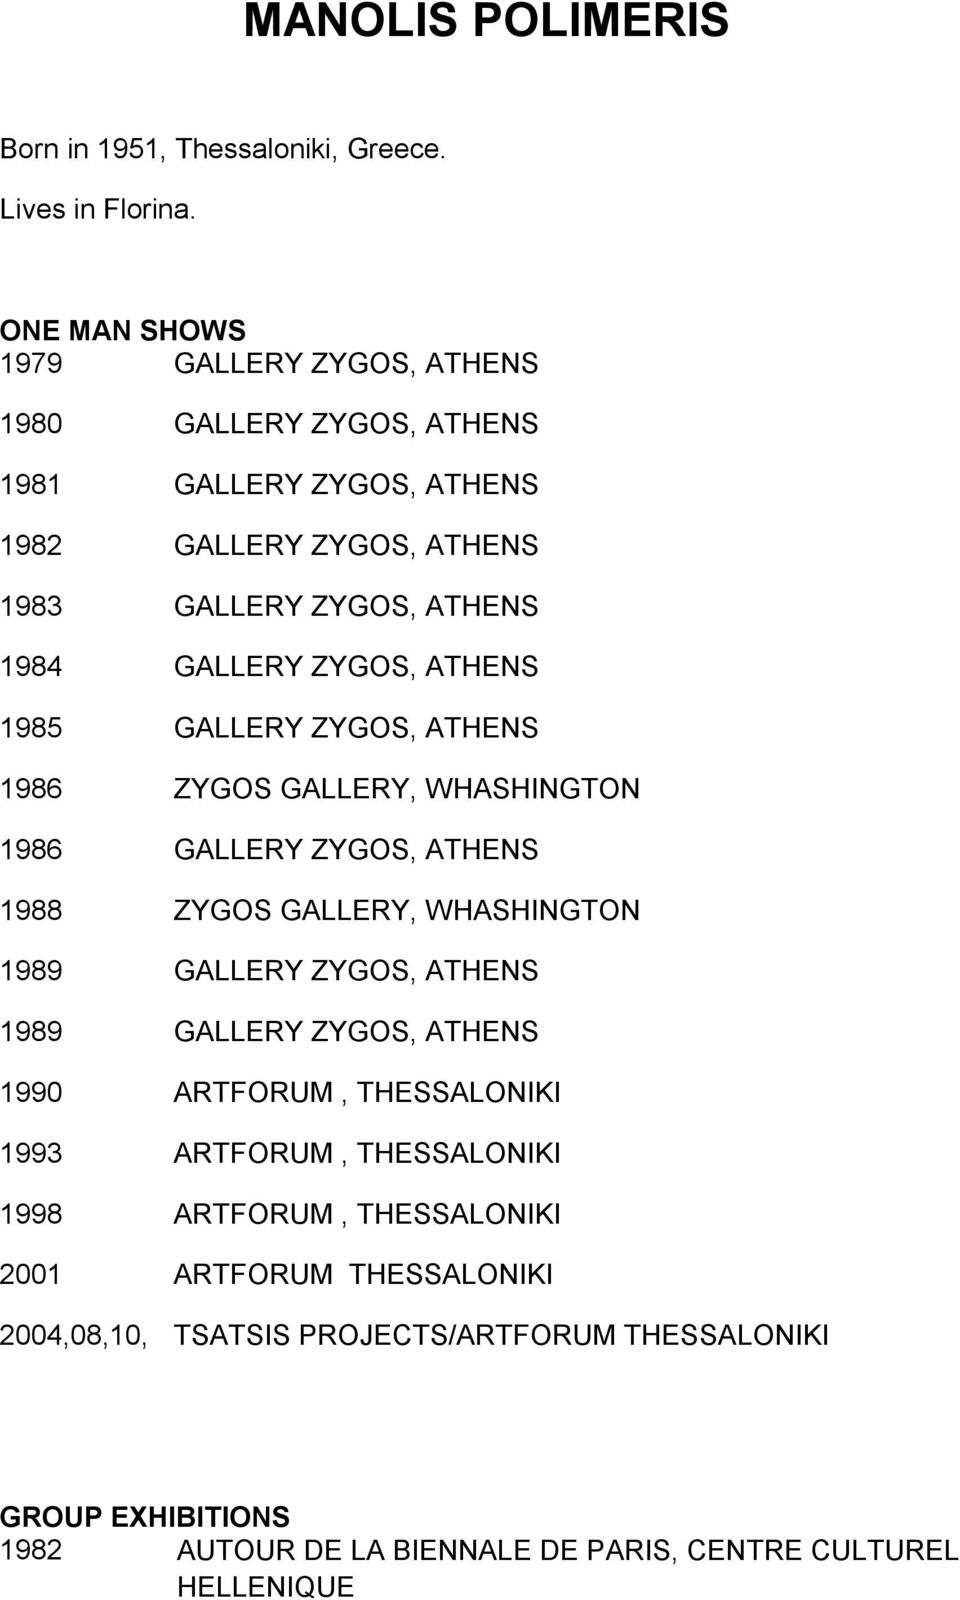 ΖΥGΟS, ATHENS 1985 GALLERY ΖΥGΟS, ATHENS 1986 ΖΥGΟS GALLERY, WHASHINGTON 1986 GALLERY ΖΥGΟS, ATHENS 1988 ΖΥGΟS GALLERY, WHASHINGTON 1989 GALLERY ΖΥGΟS, ATHENS 1989